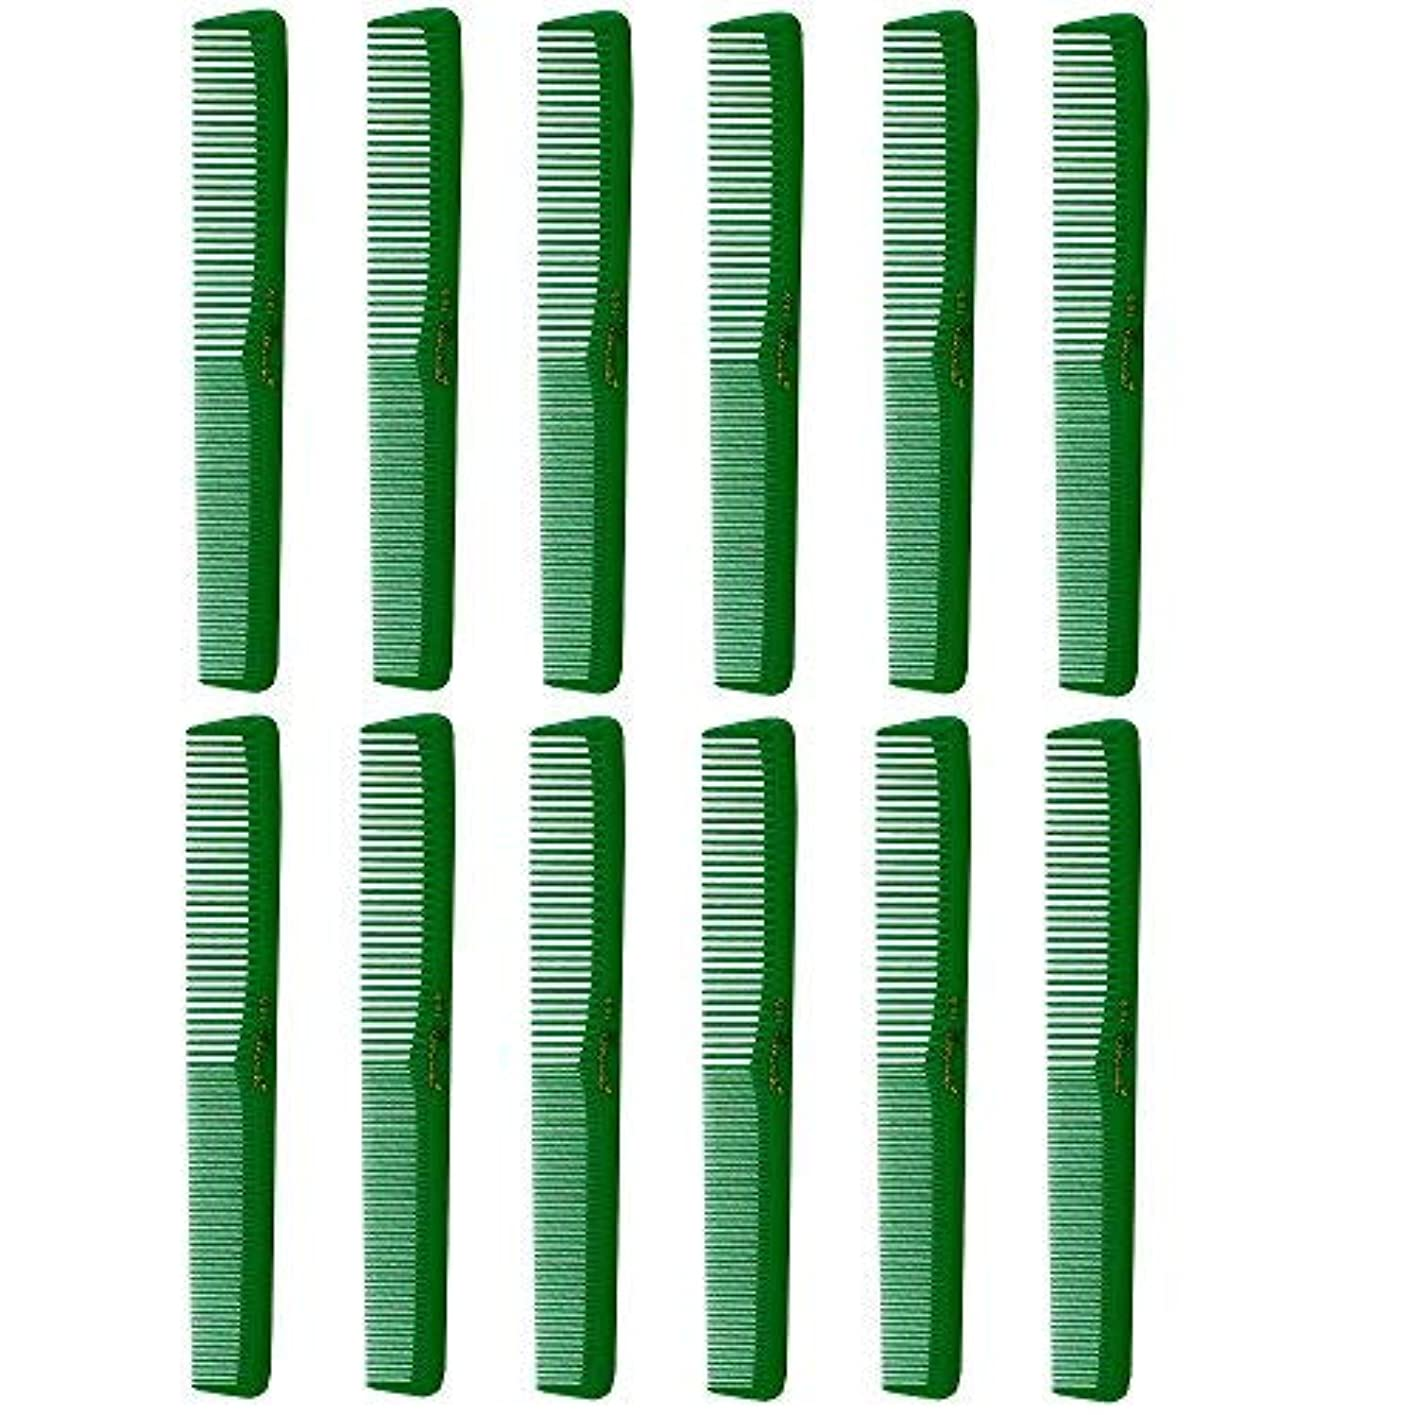 反論冷笑するほぼBarber Beauty Hair Cleopatra 400 All Purpose Combs (12 Pack) 12 x SB-C400-GREEN [並行輸入品]